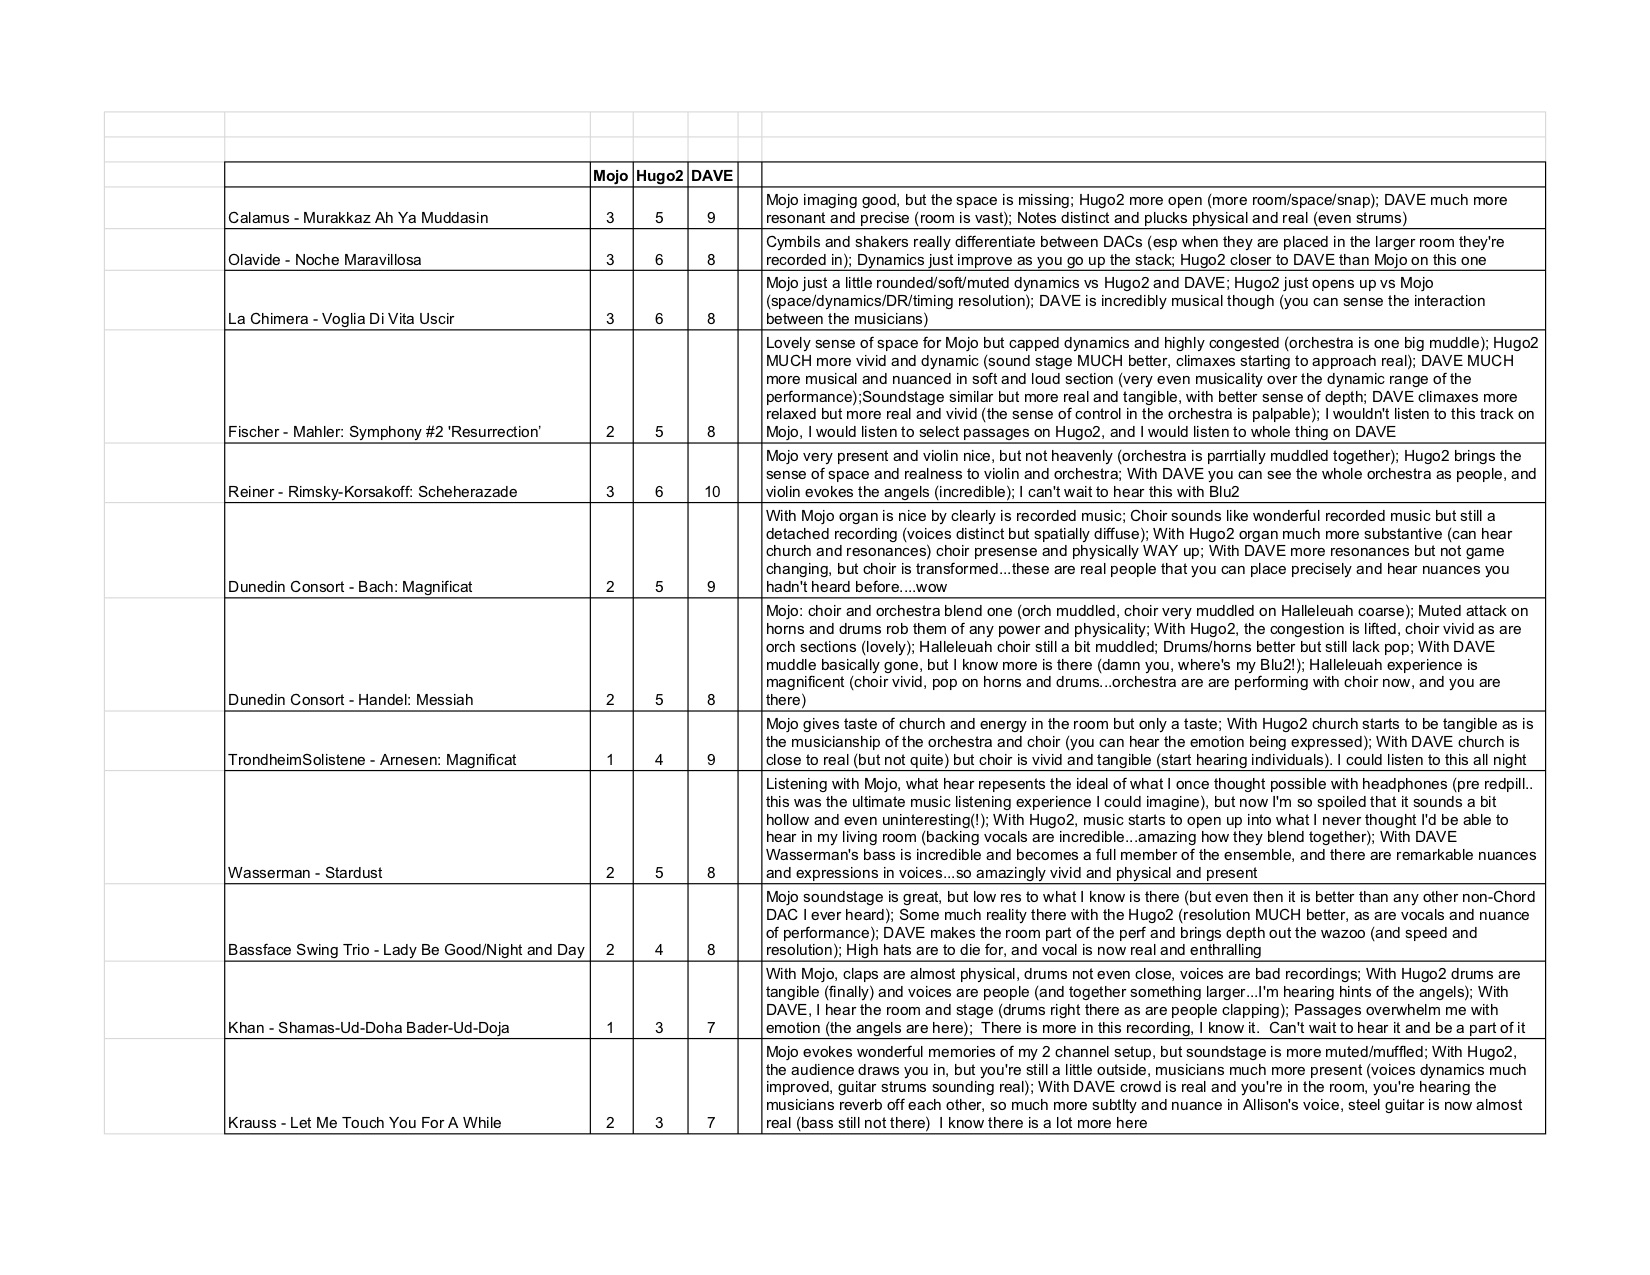 High Res Content - Sheet6.jpg